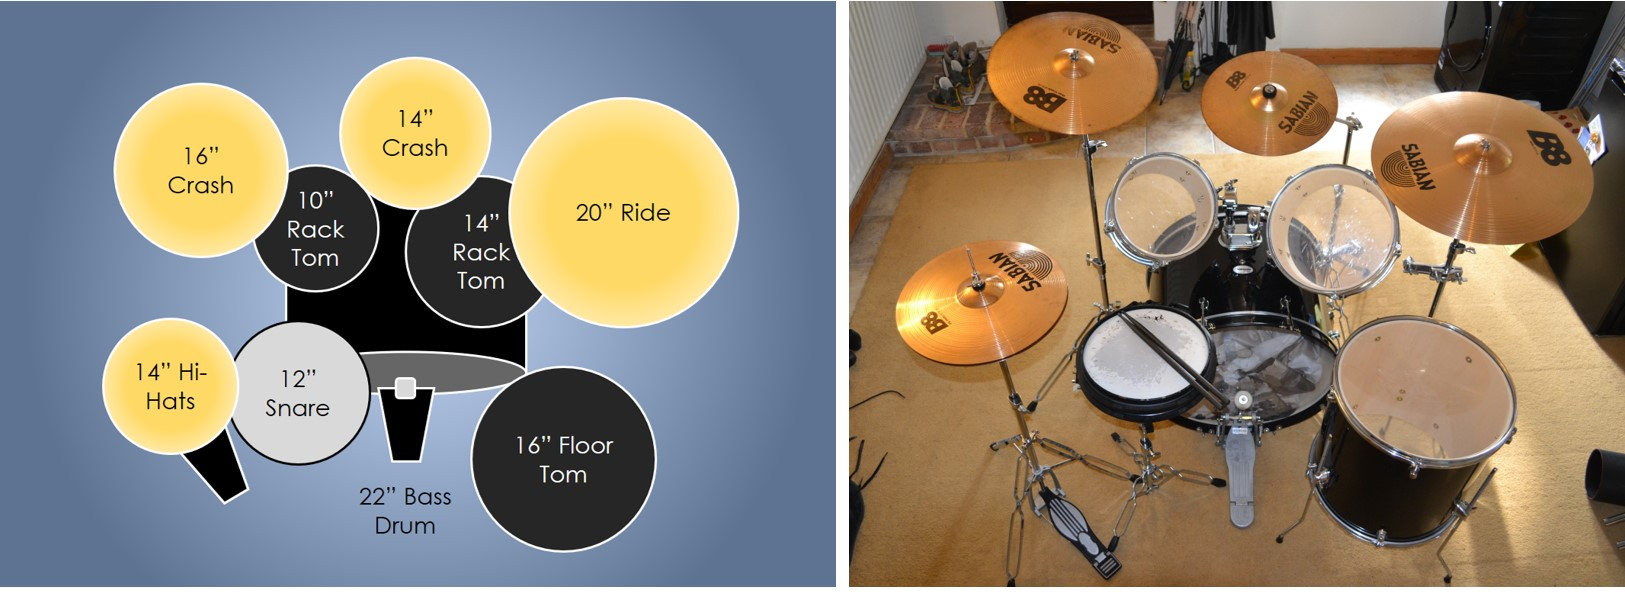 Anatomy Of A Drum Kit A Tour Of My Drums Liam Smiths Blog